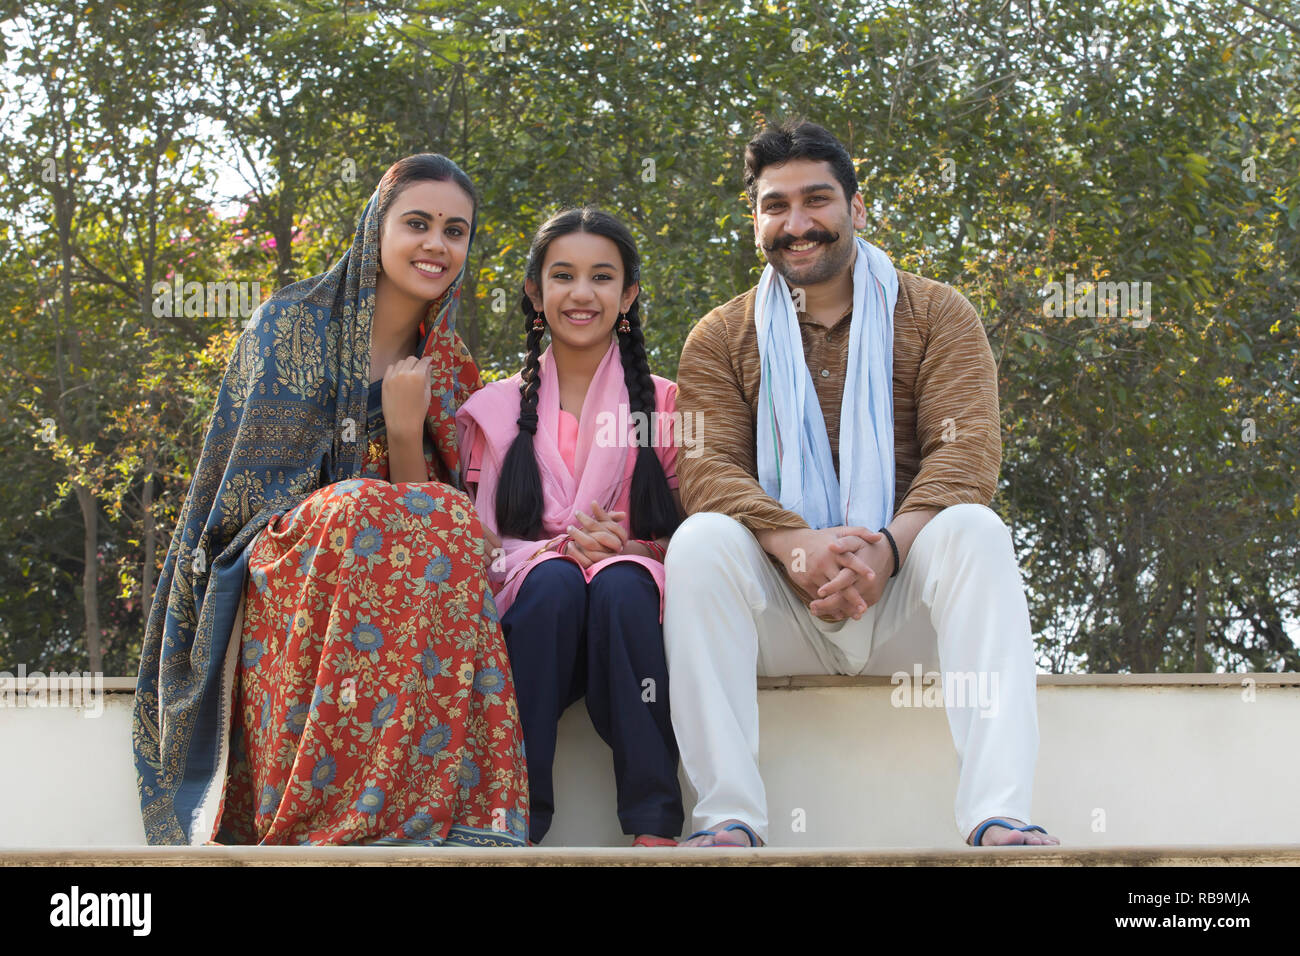 Happy village couple along with their young daughter sitting on steps outdoors